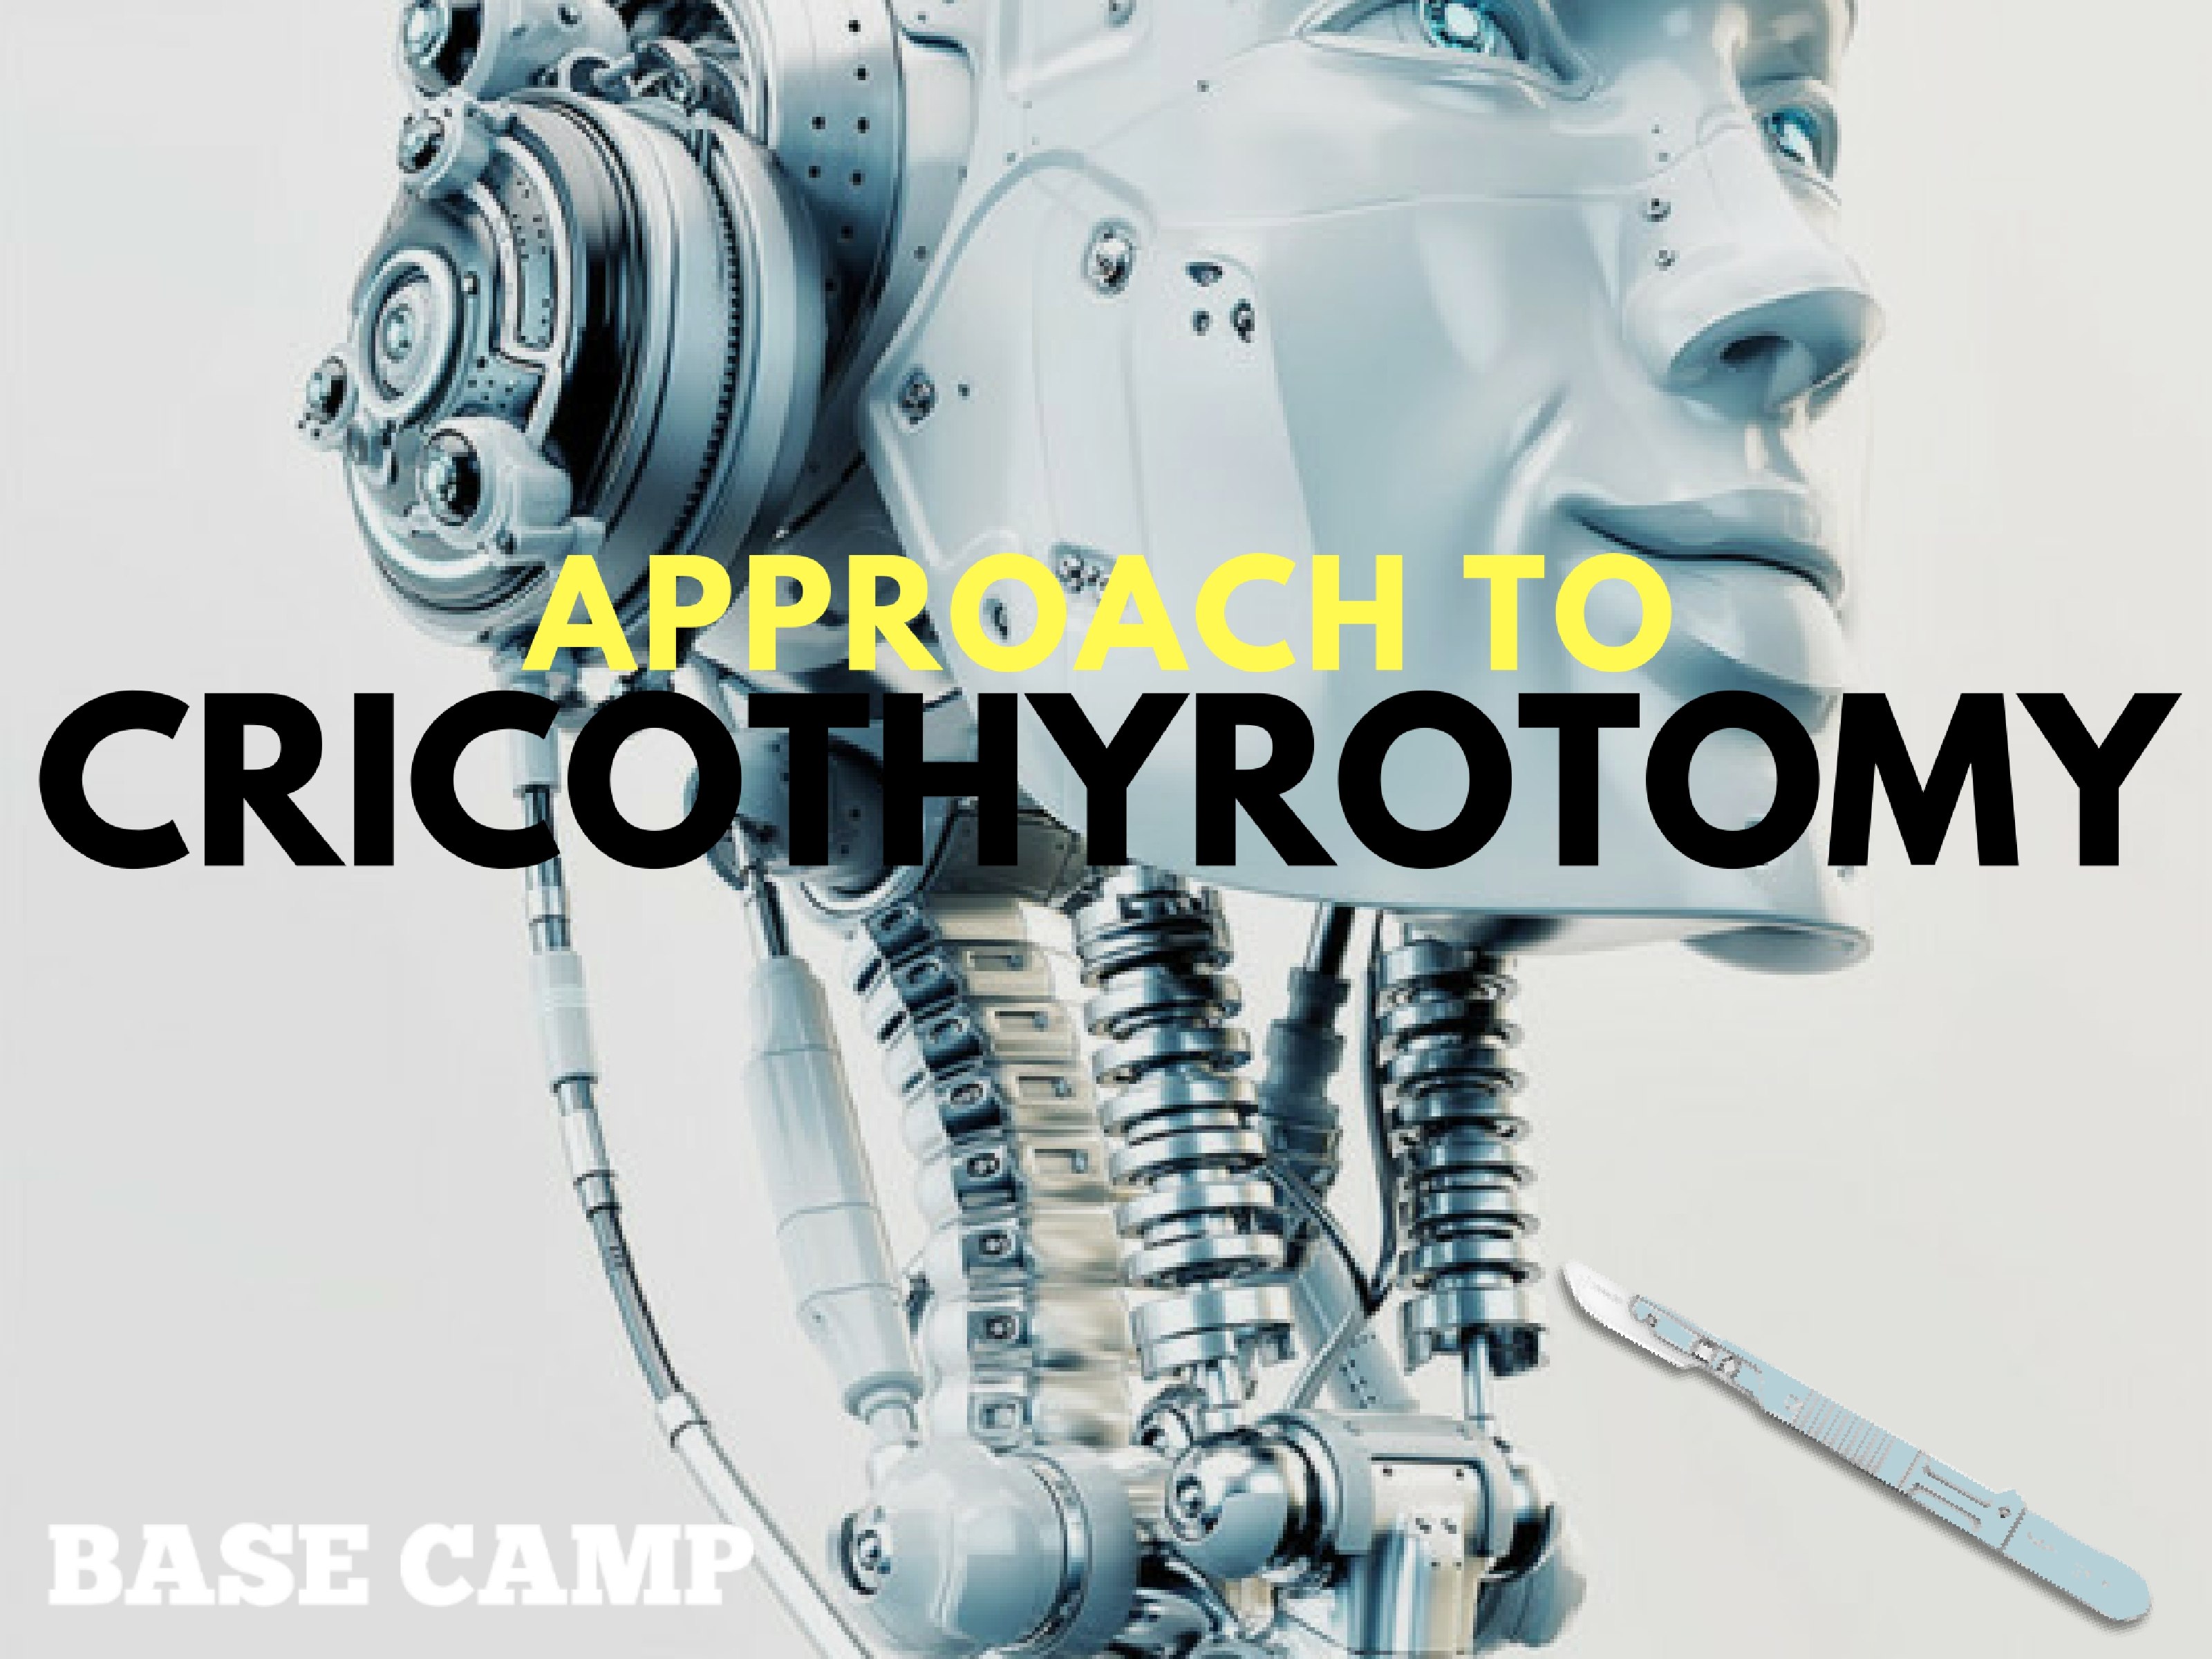 Approach To Cricothyrotomy